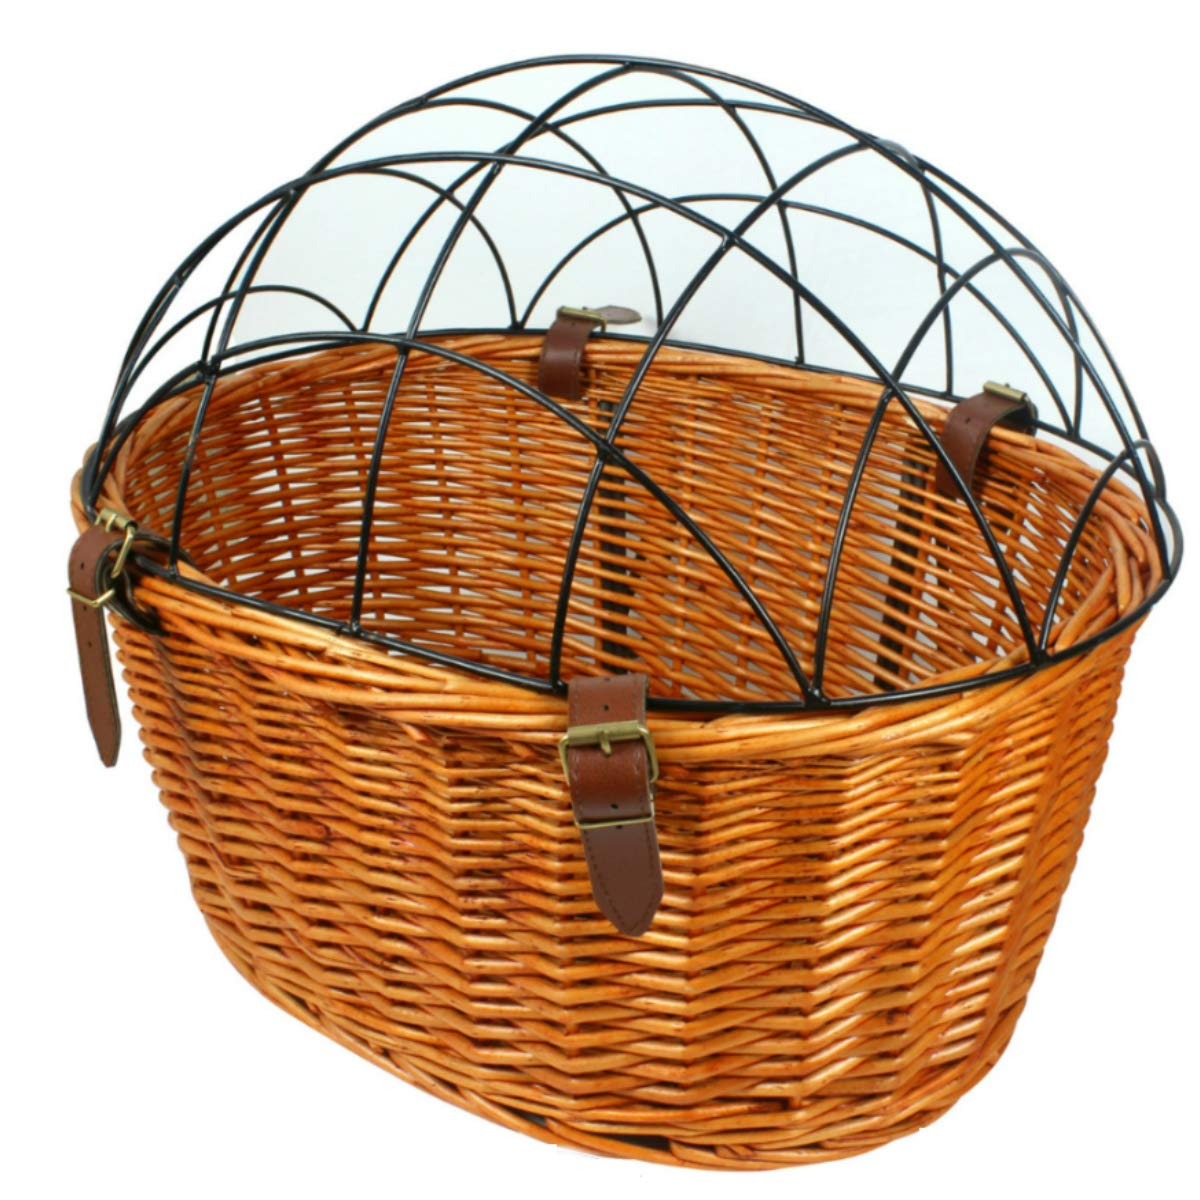 Dog Basket for Bike Bicycle Front Pet Cat Carrier Cage Willow Cage Hanging Basket Capacity12lbs by AORYVIC